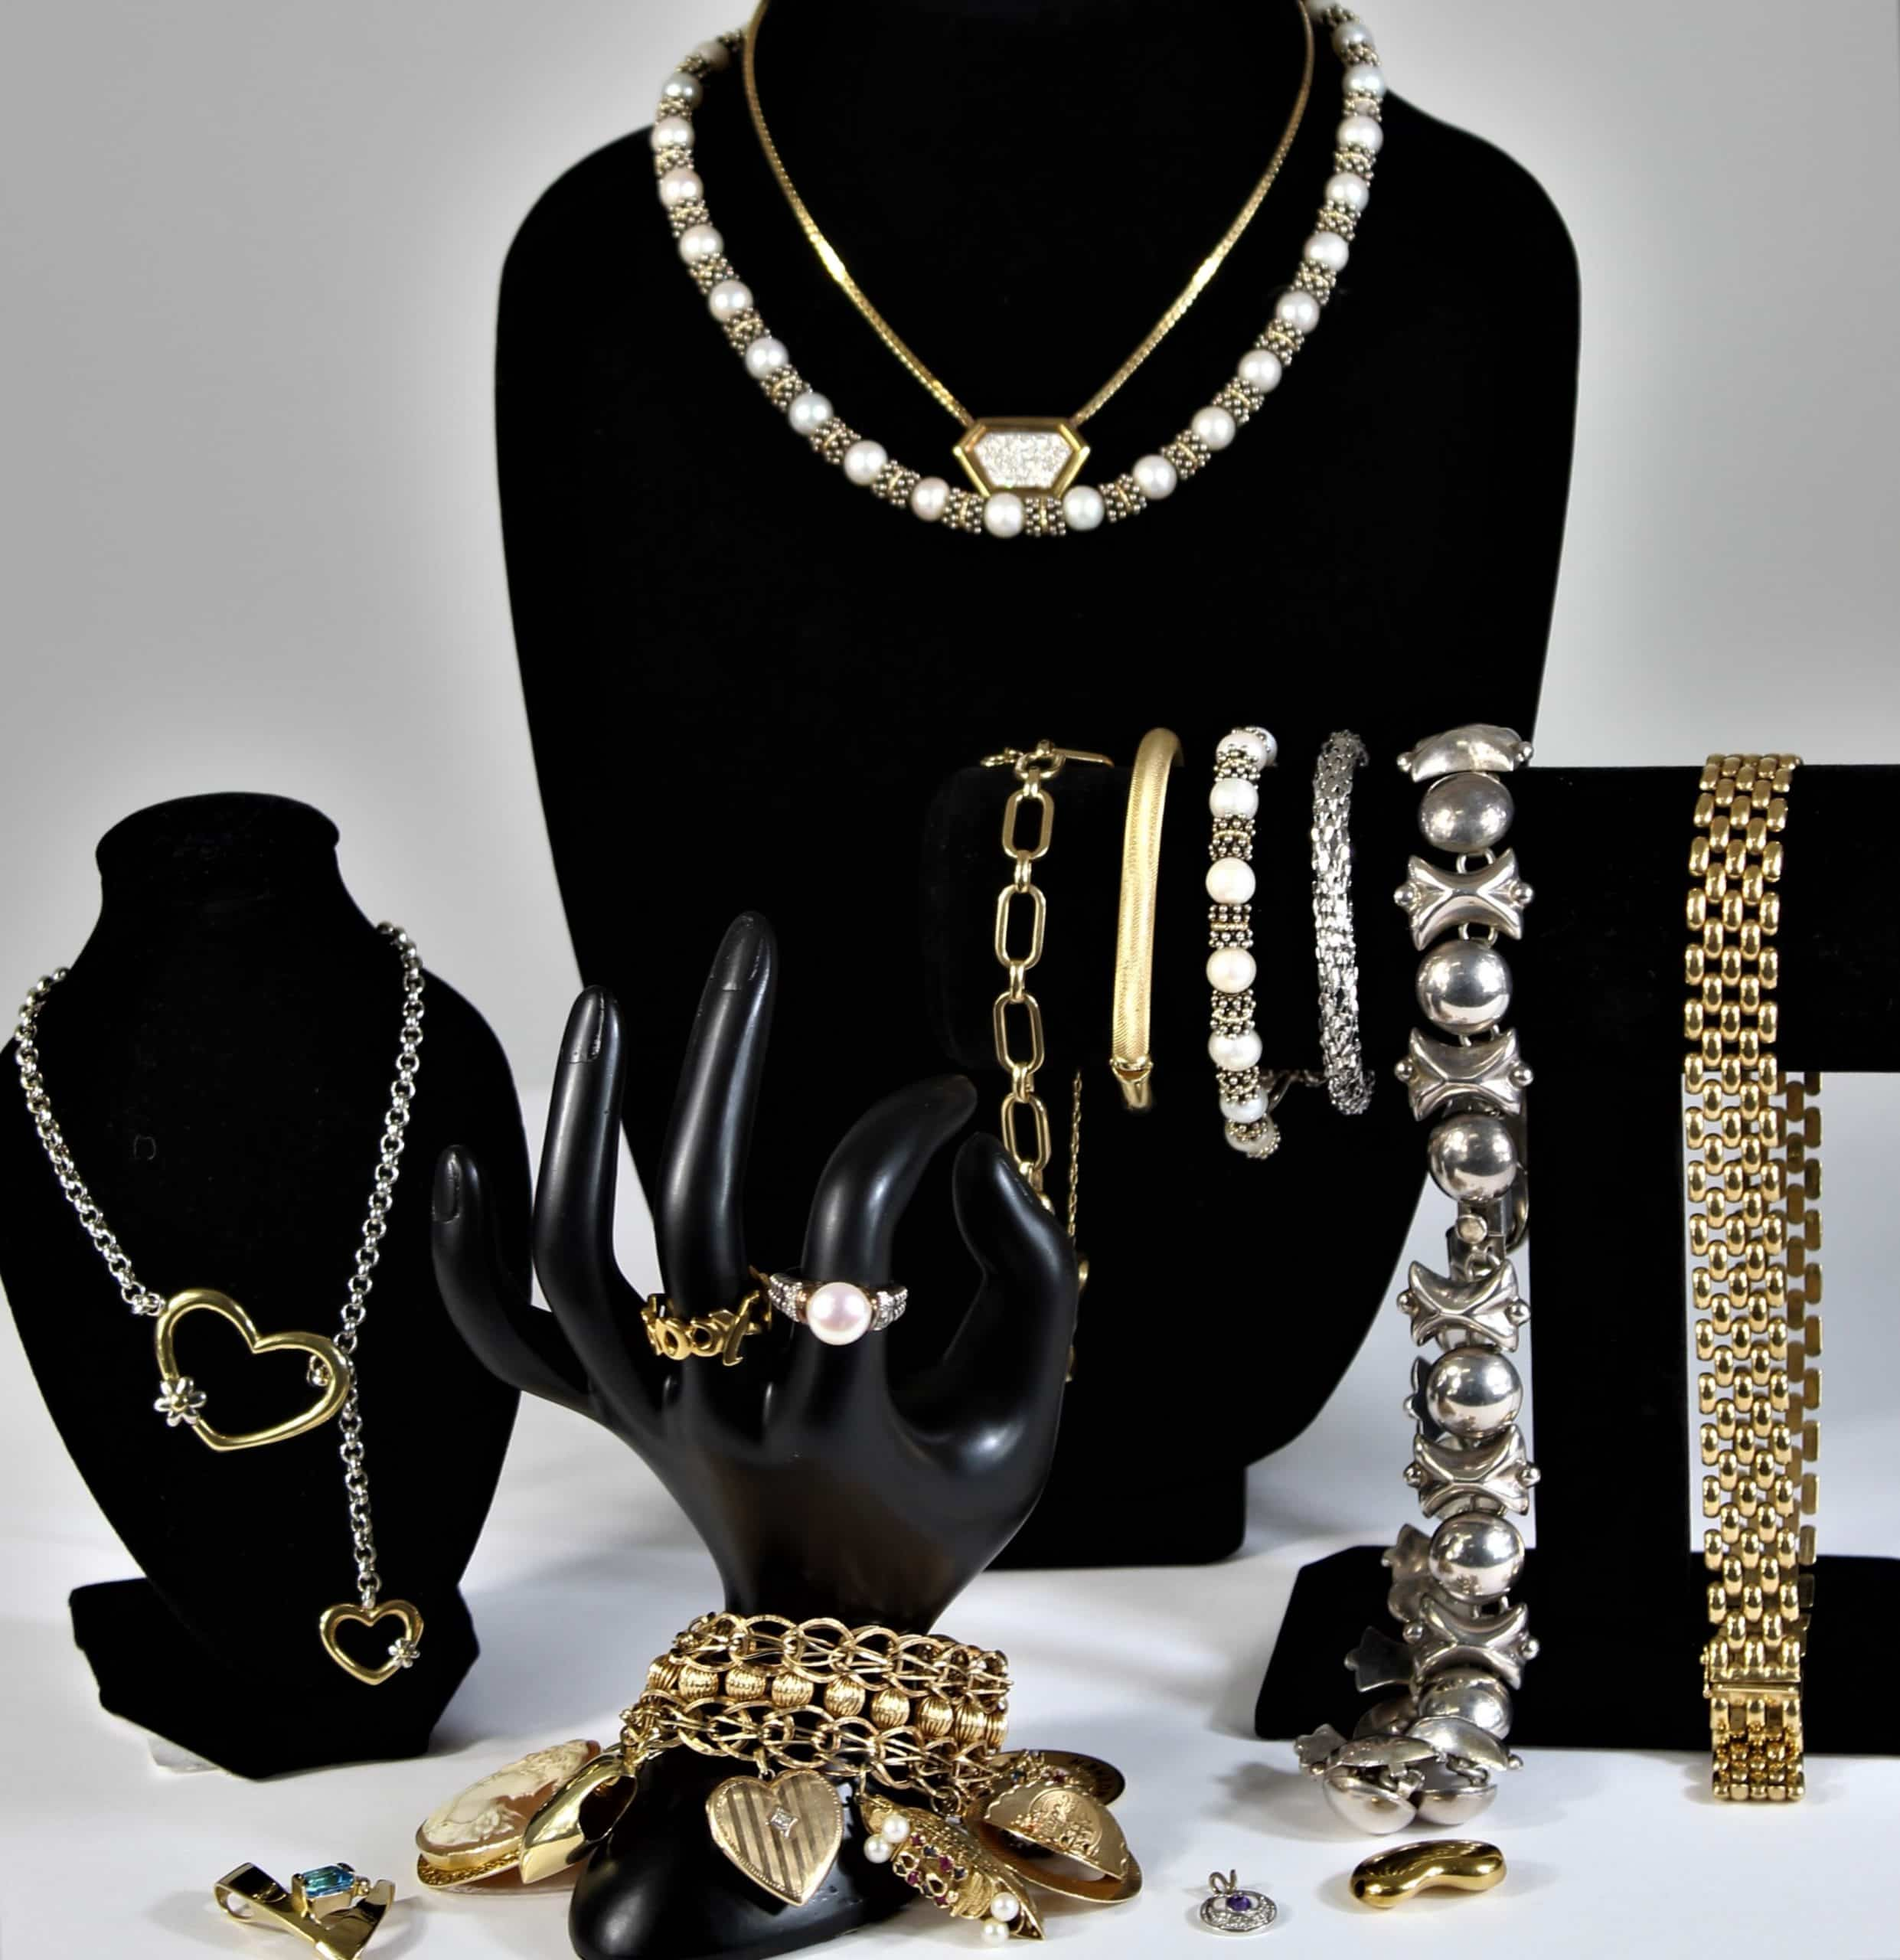 Assortment of Gold and Silver Jewelry